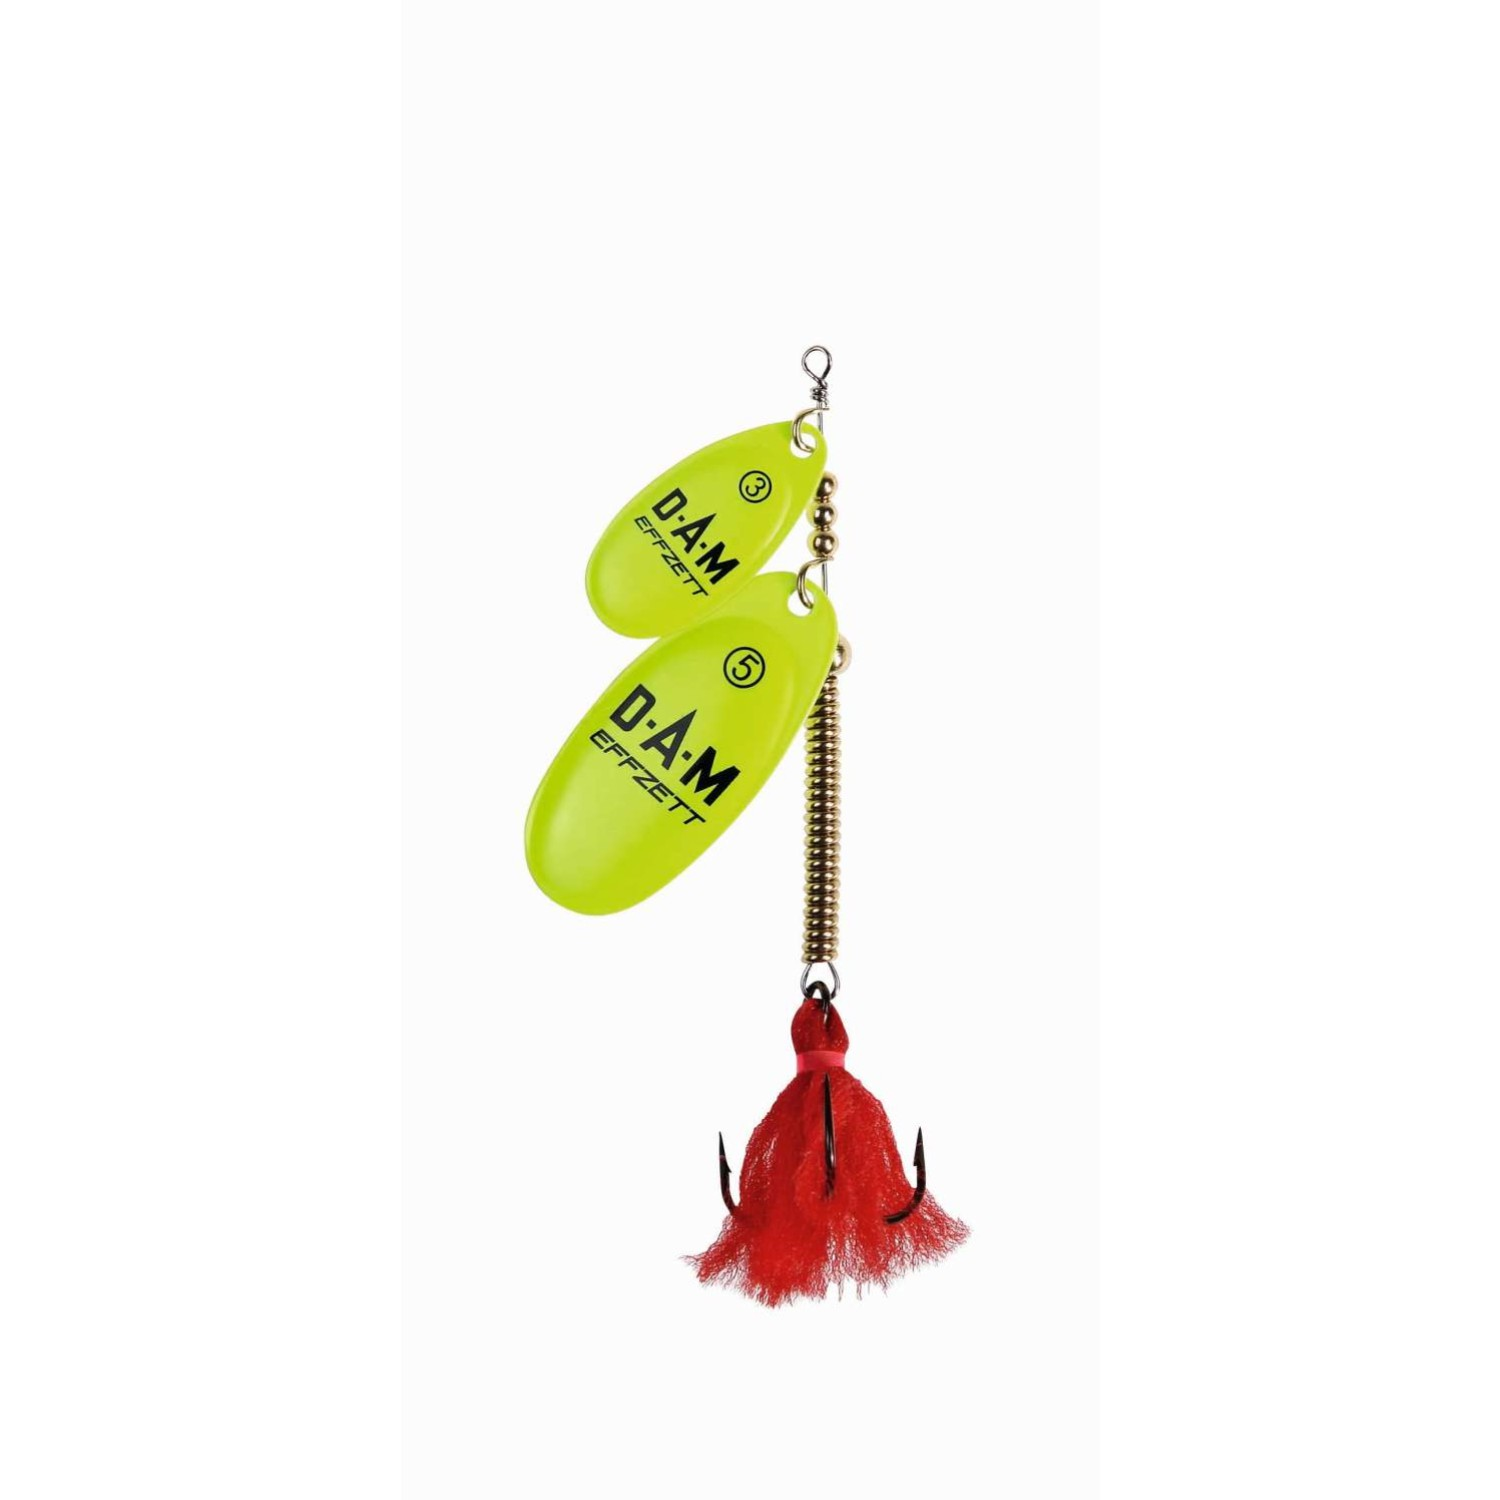 bbbac78e2a7 DAM Effzett Shallow Runner Tandem Fluo Yellow, Fishingtackle24 -  Angelbedarf Angelruten Angelbekleidung Angelzubehör Kunstköder Angeltaschen  Angelzelt ...